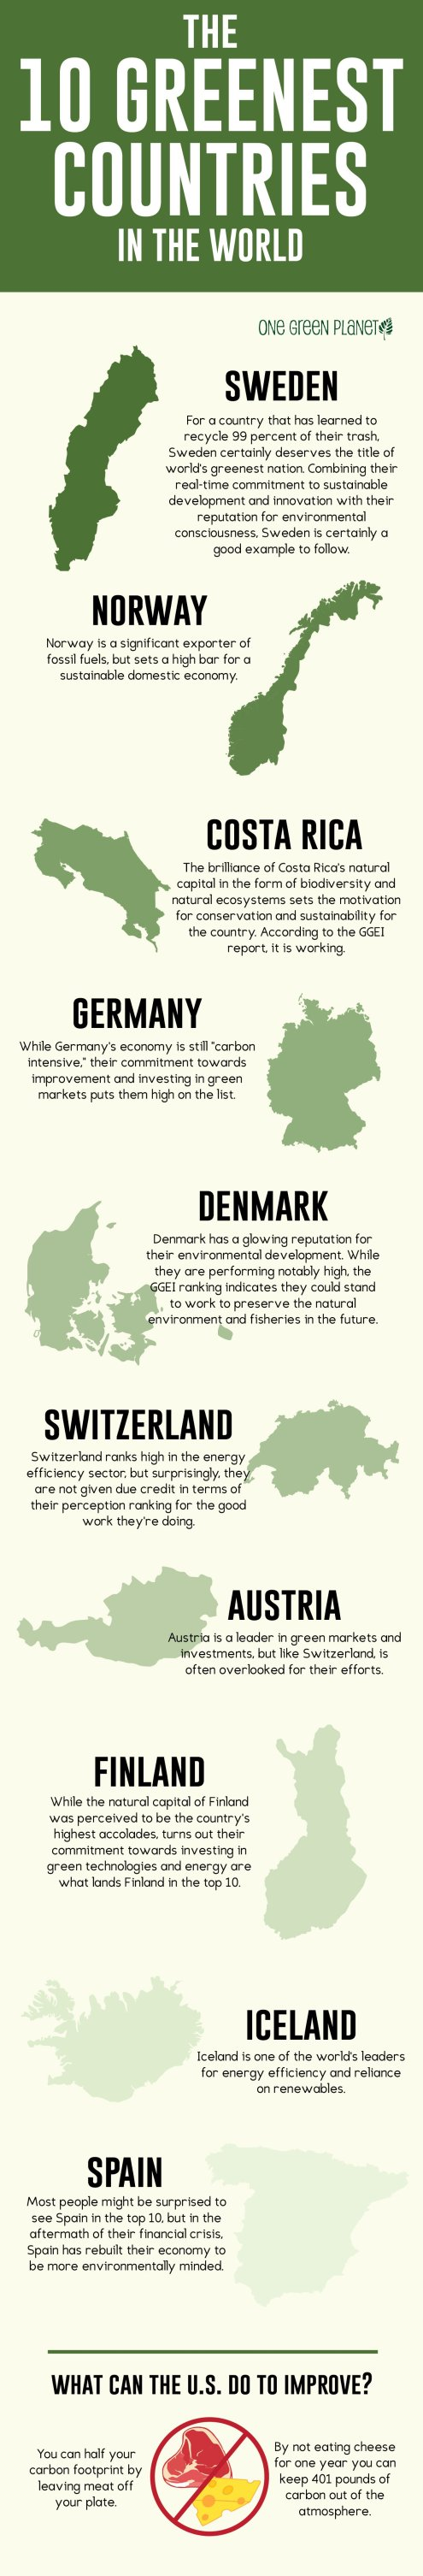 10 Greenest Countries In The World 2016